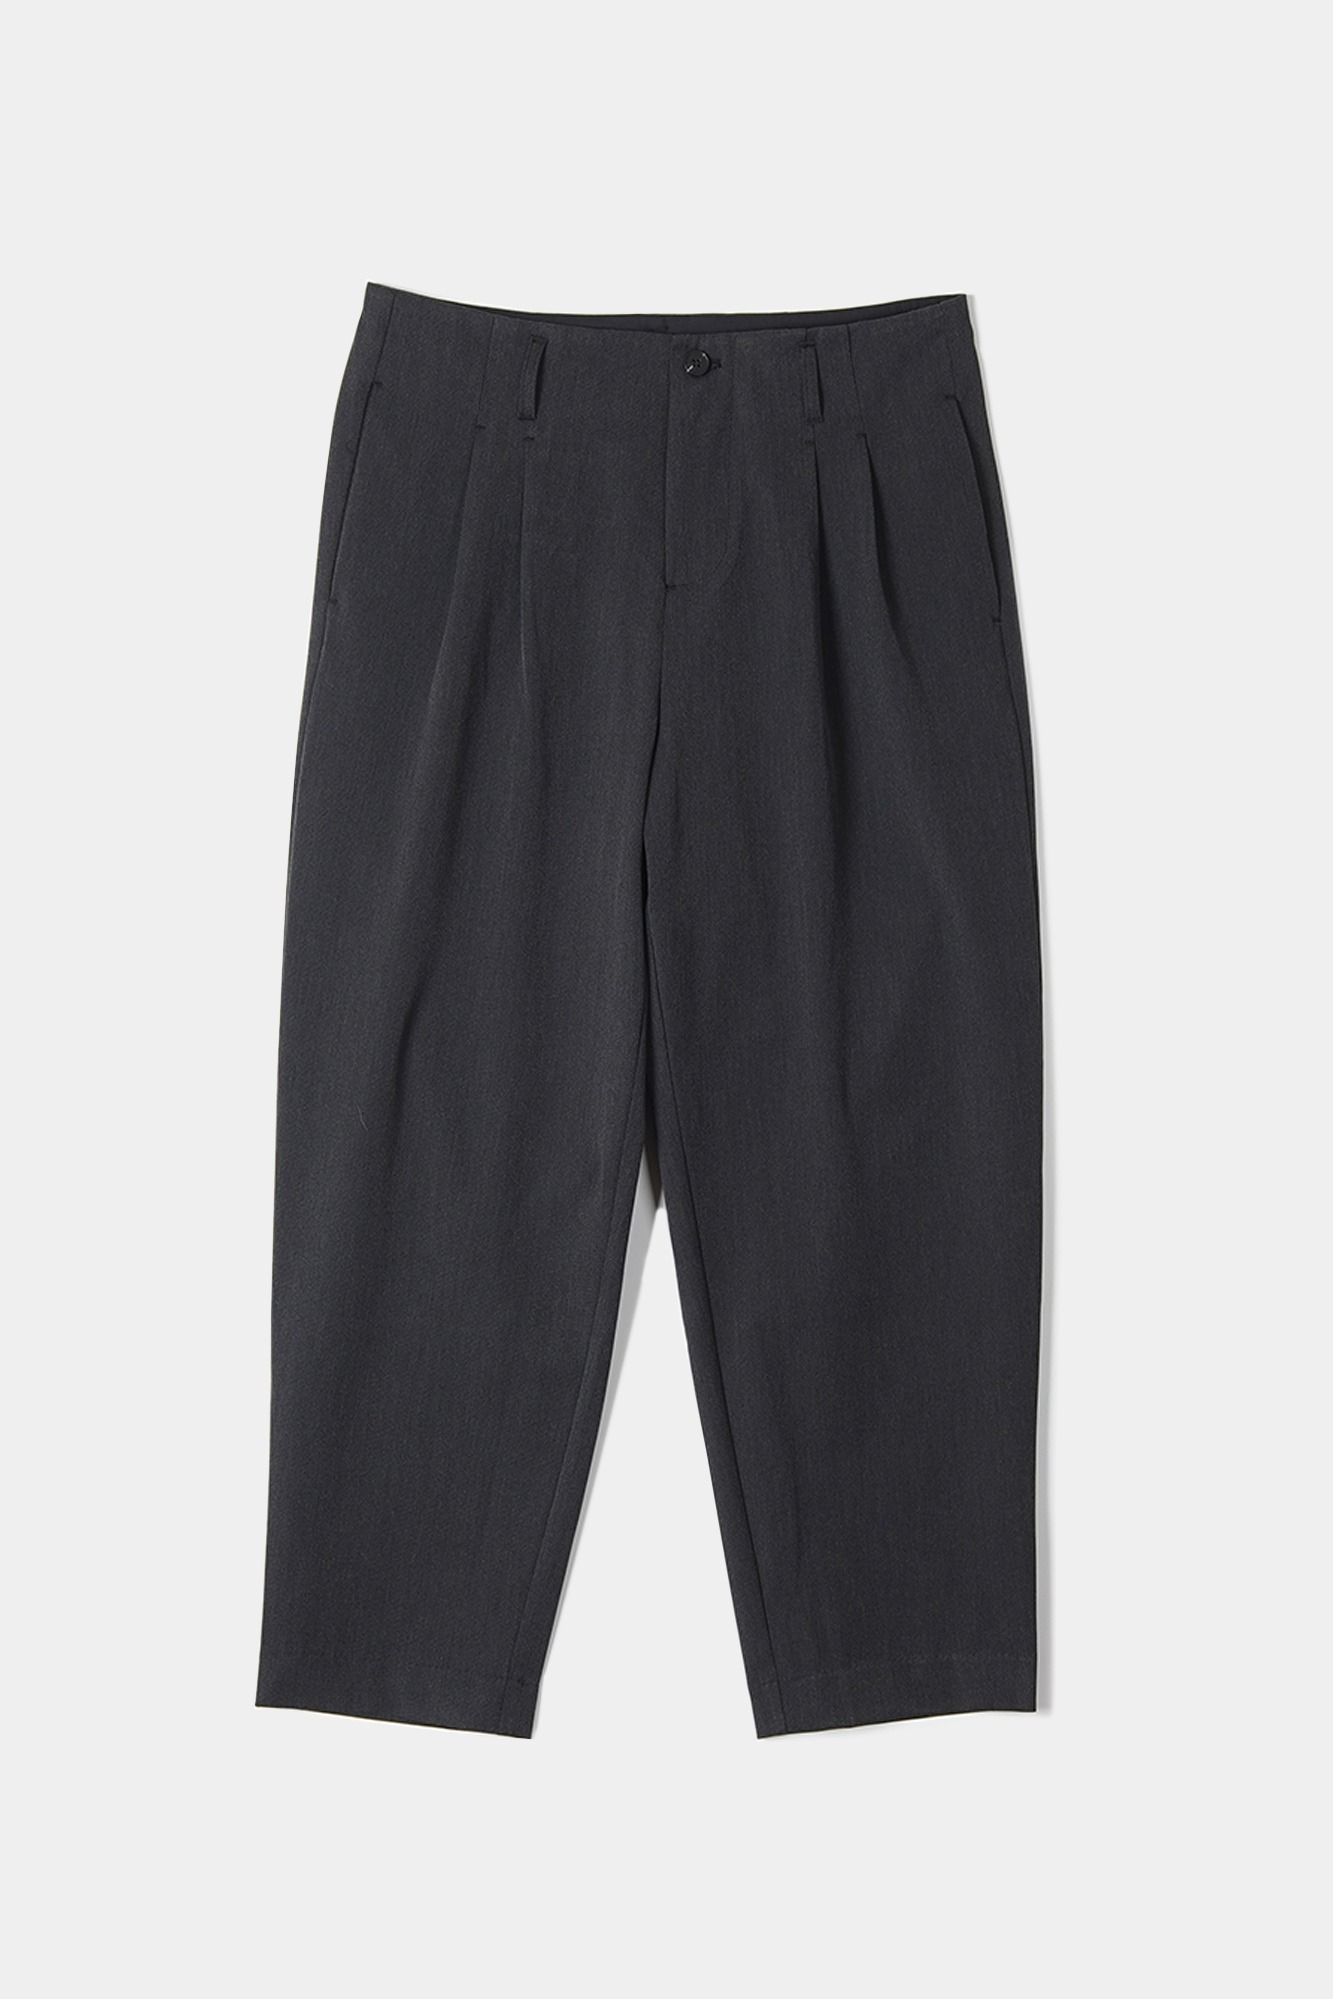 "OOPARTS Carrot-fit cropped pants ""Dark grey"""